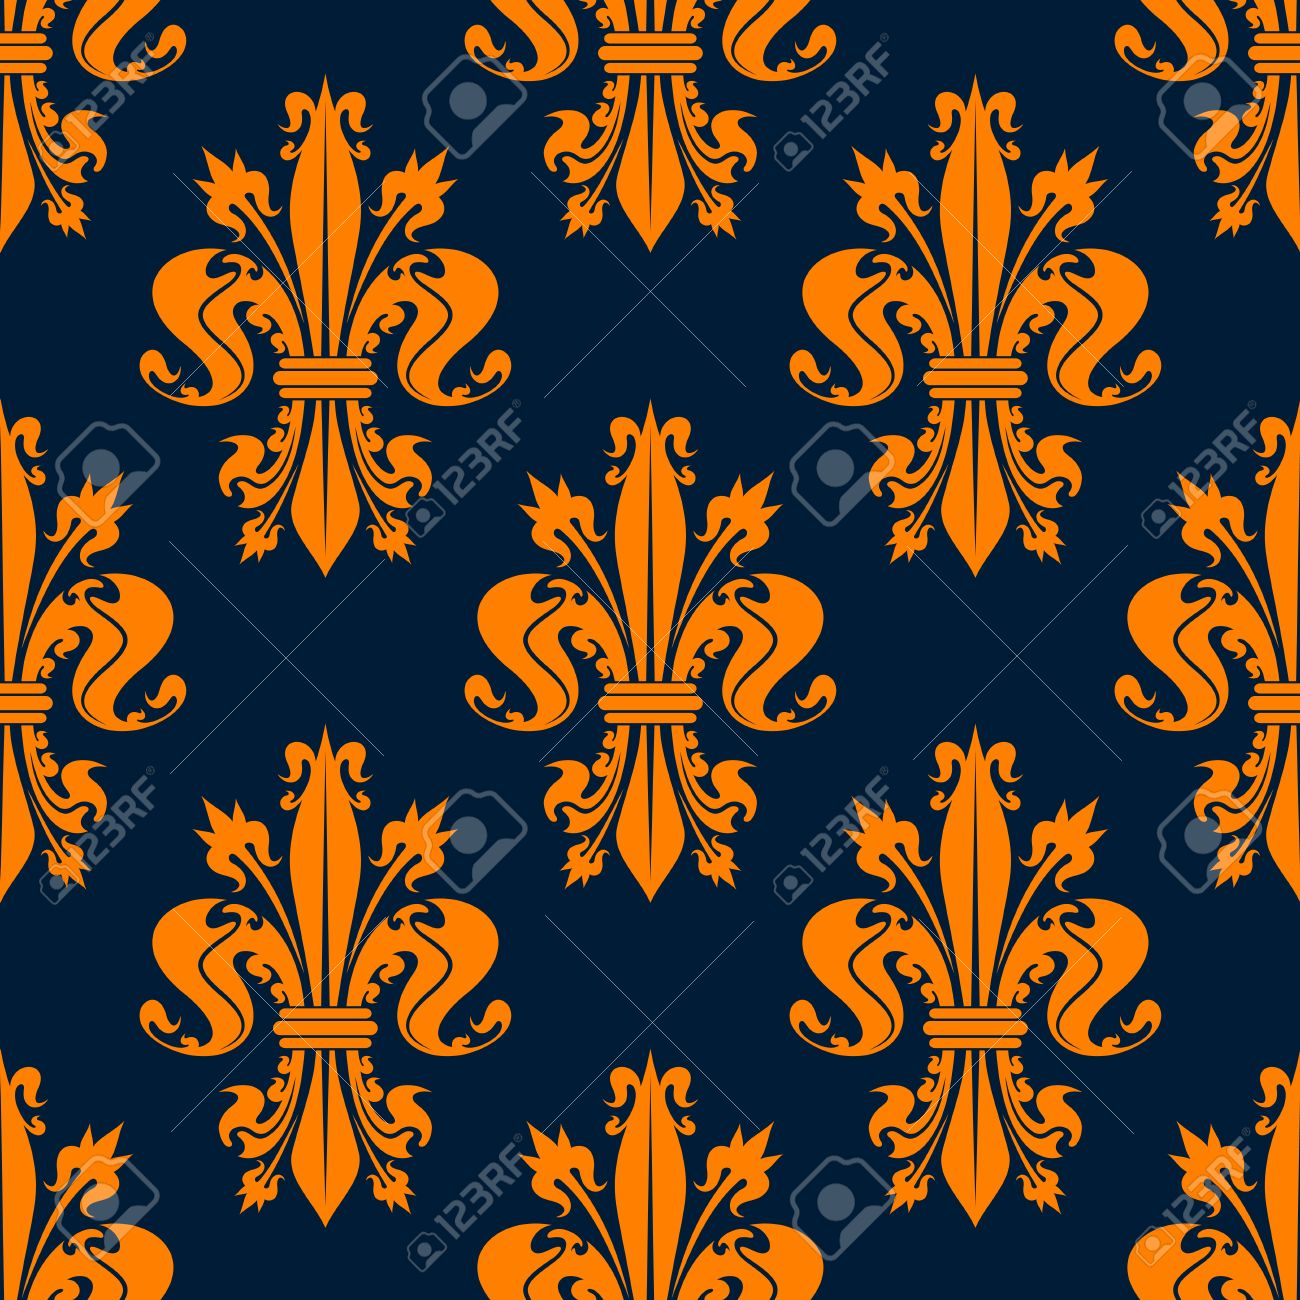 Seamless Victorian Royal Floral Pattern With Stylized Orange Fleur